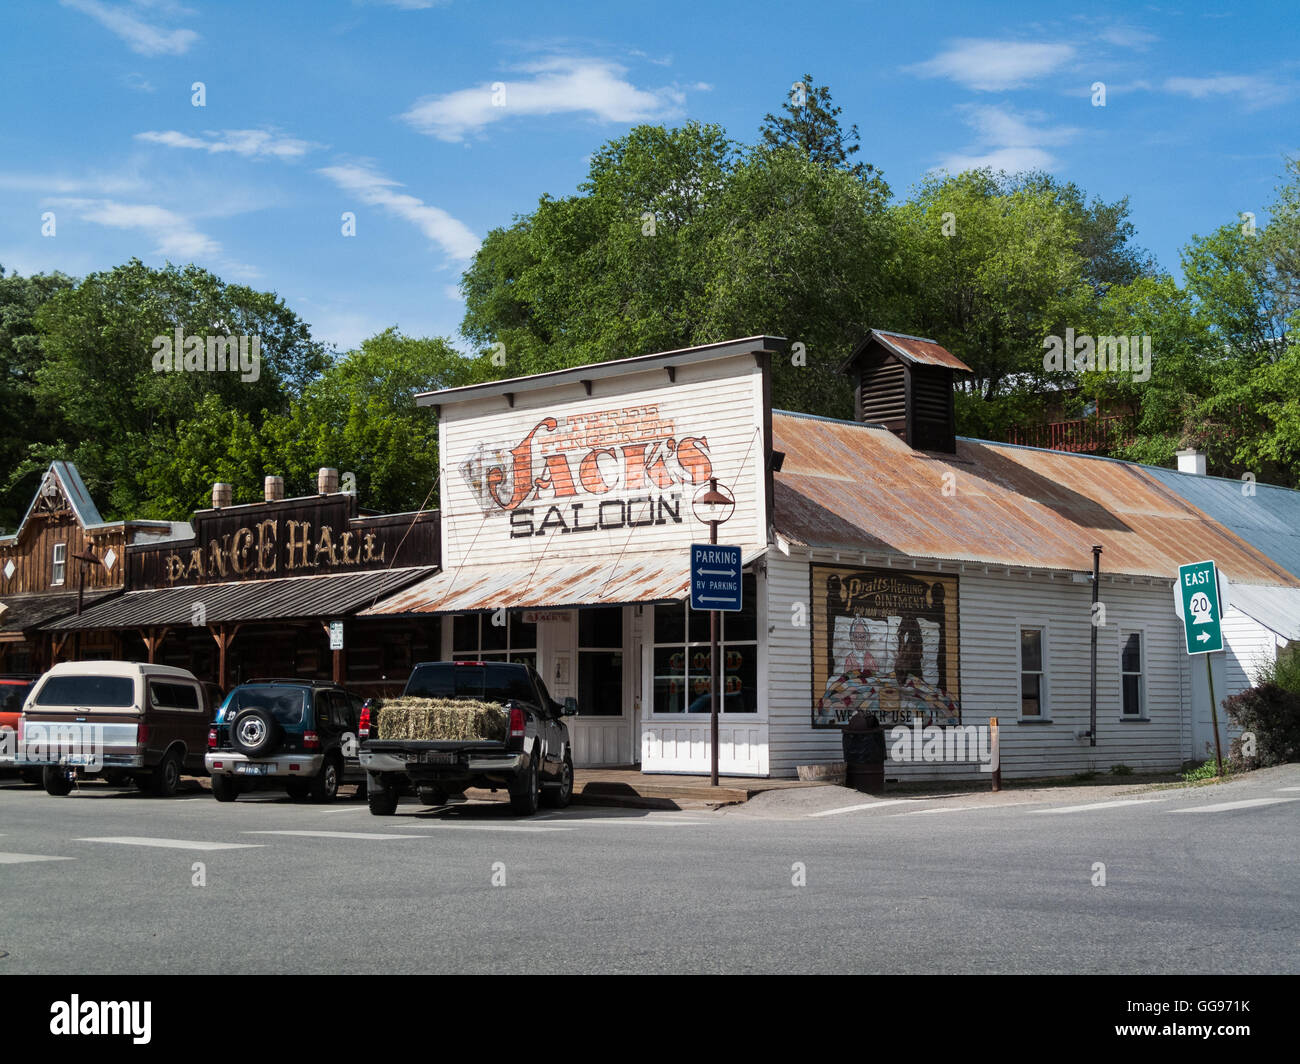 Saloon bar western photos saloon bar western images alamy for Salon sur la rue